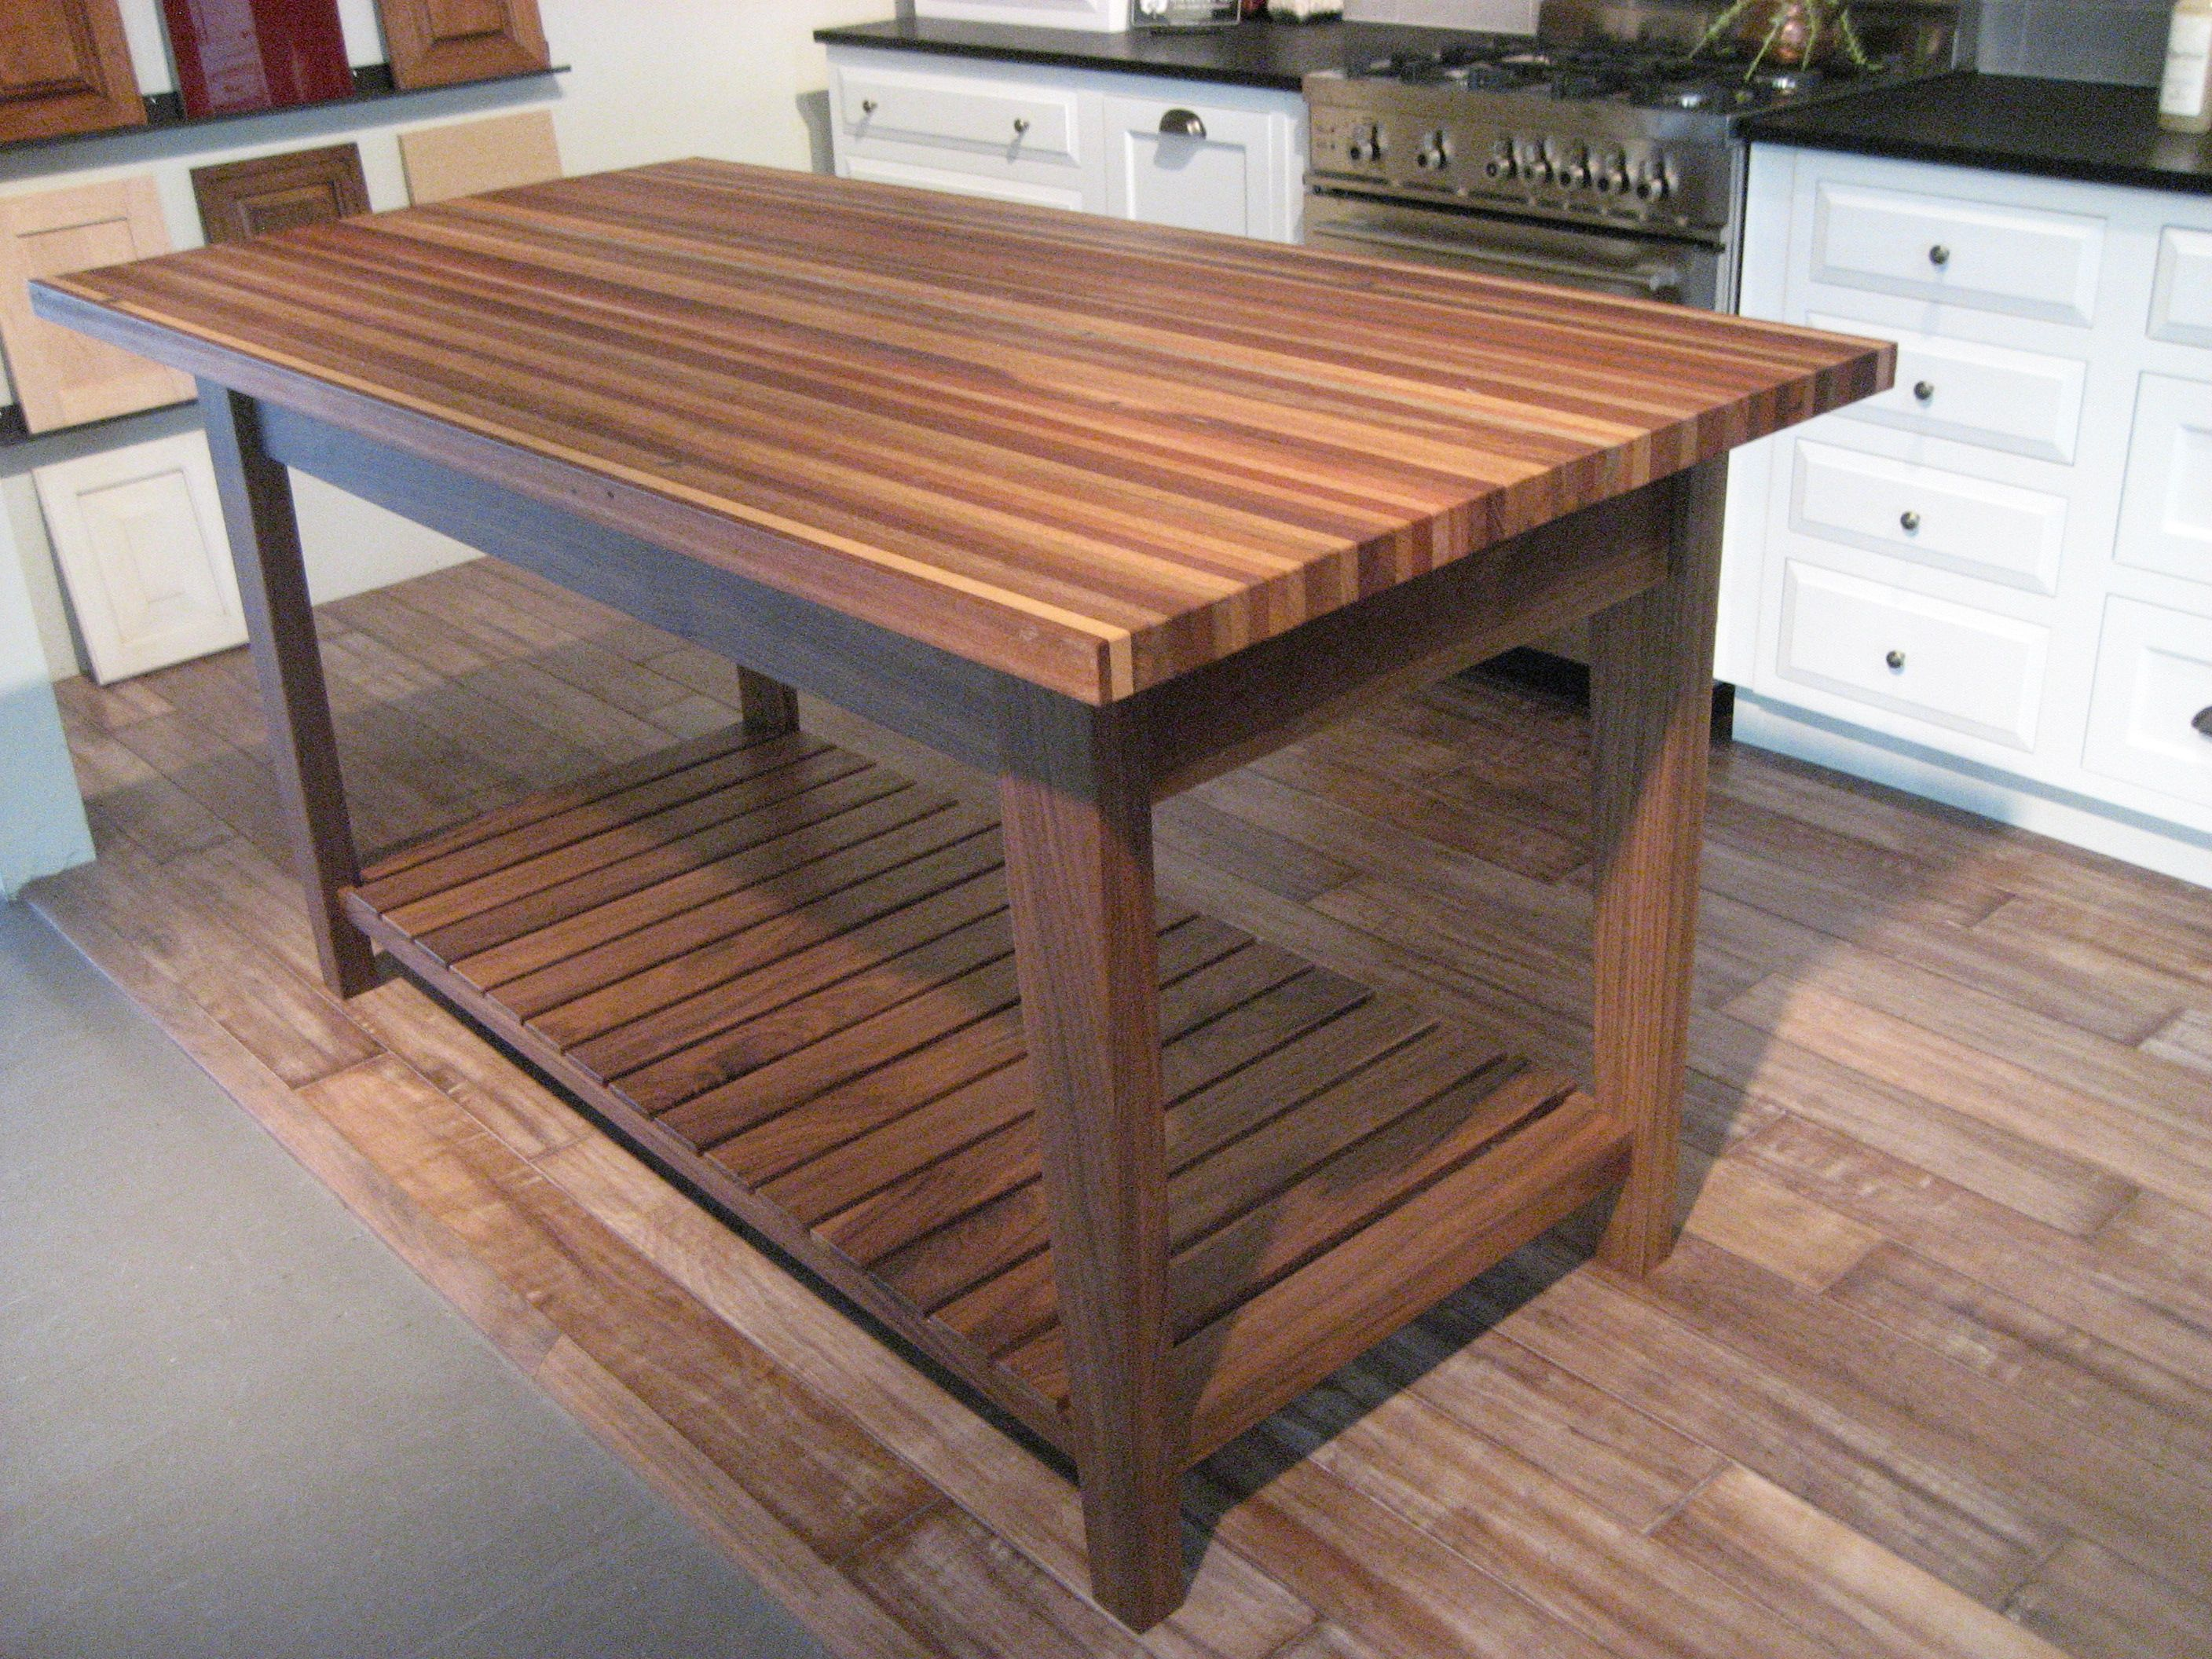 appliances and fixtures eye on design by dan gregory page 2 - Homemade Kitchen Island Ideas